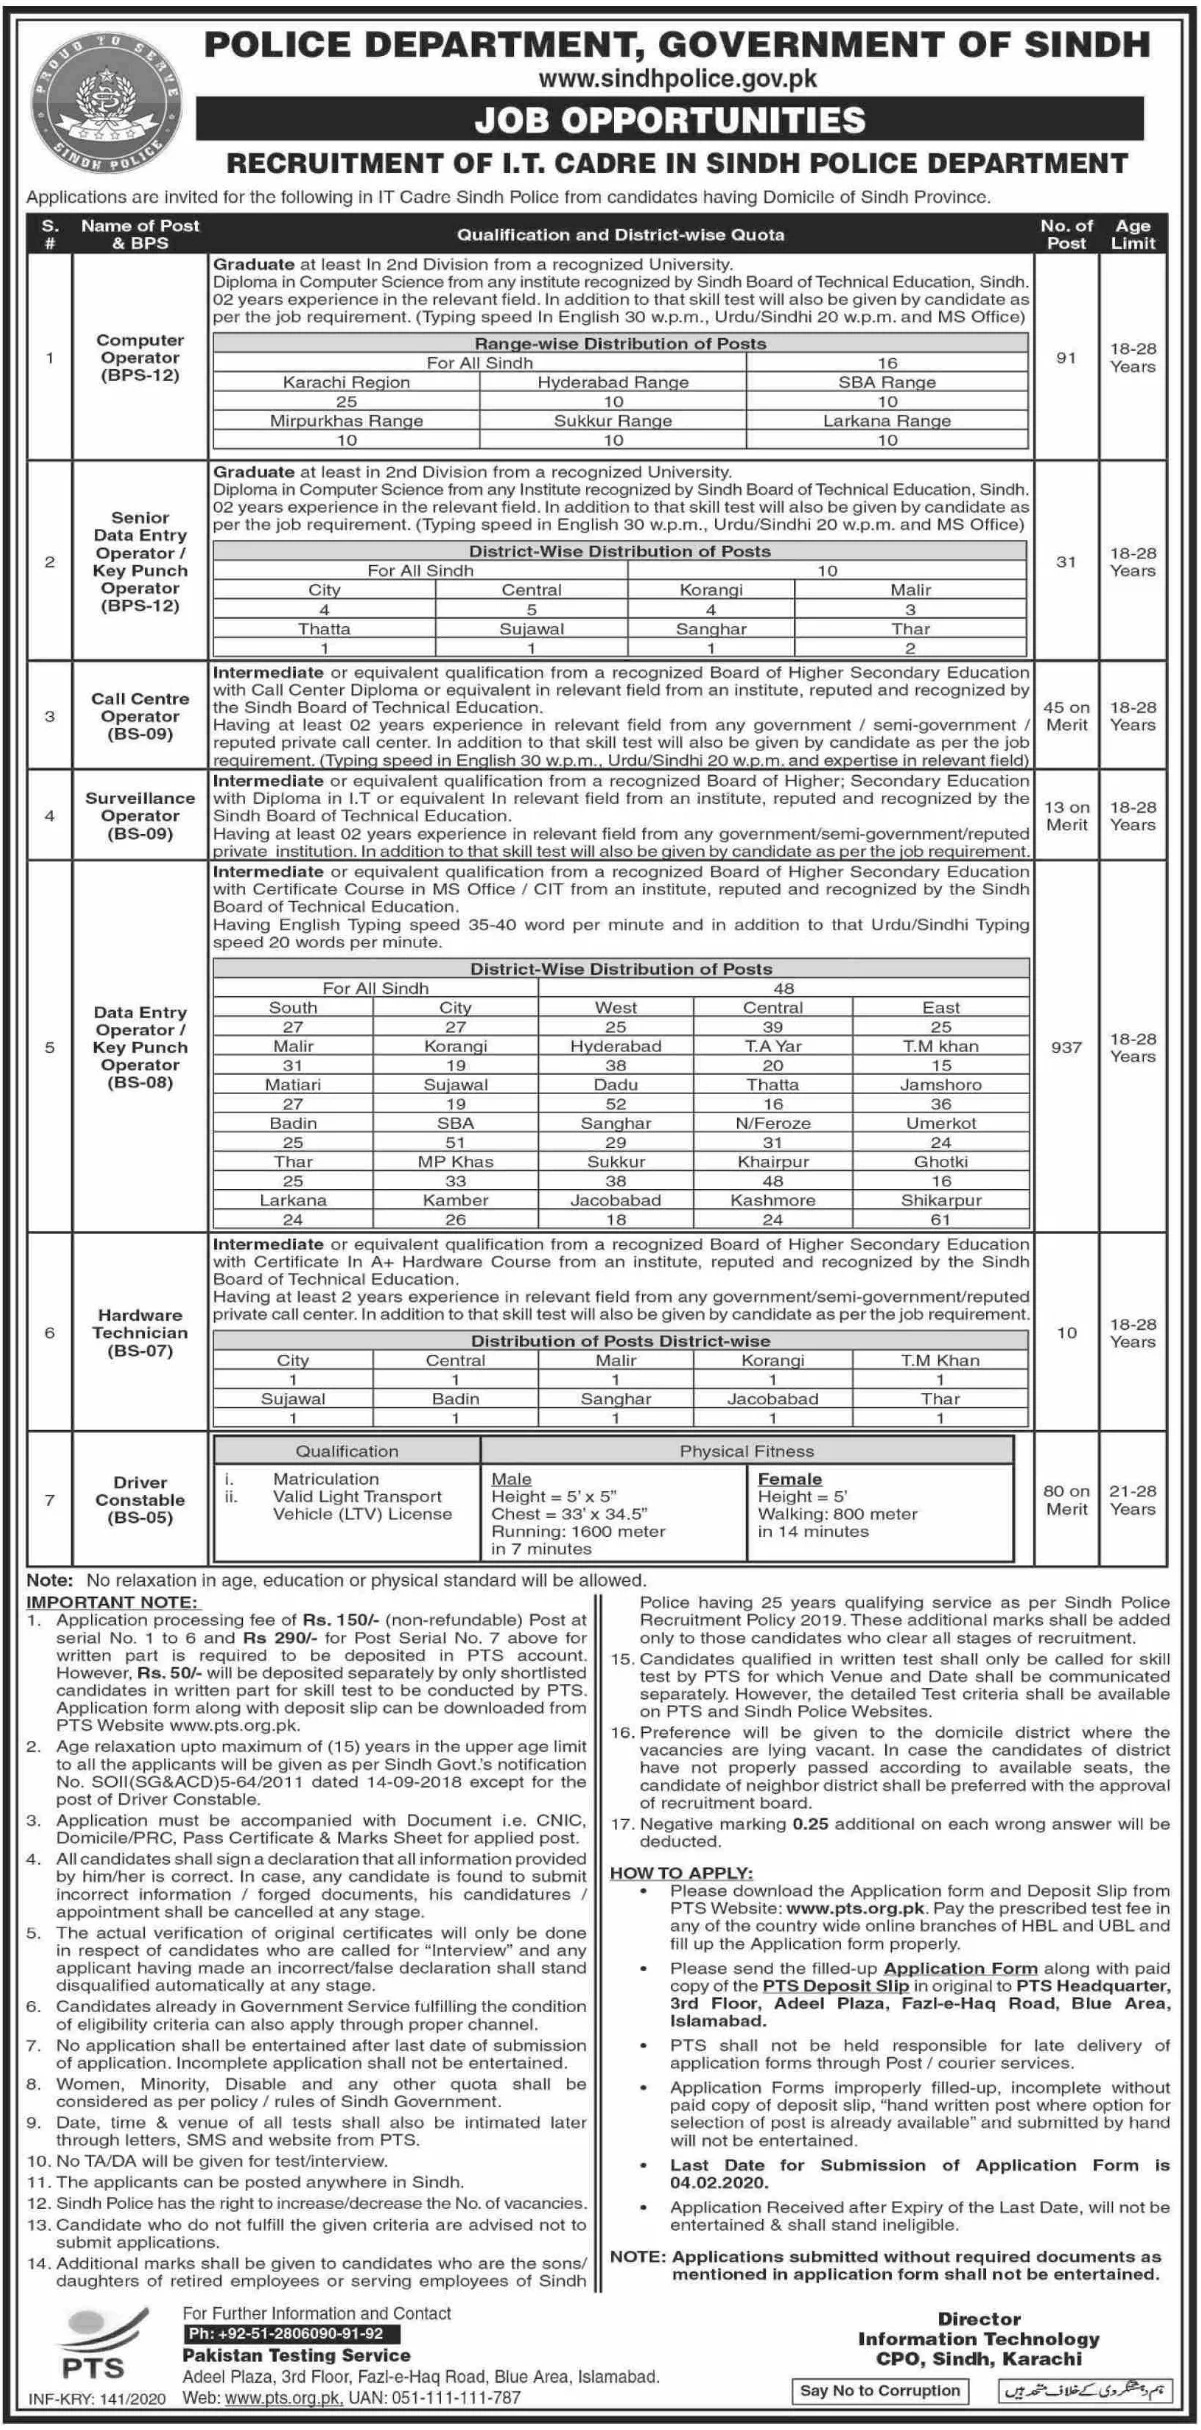 Sindh Police Department Jobs